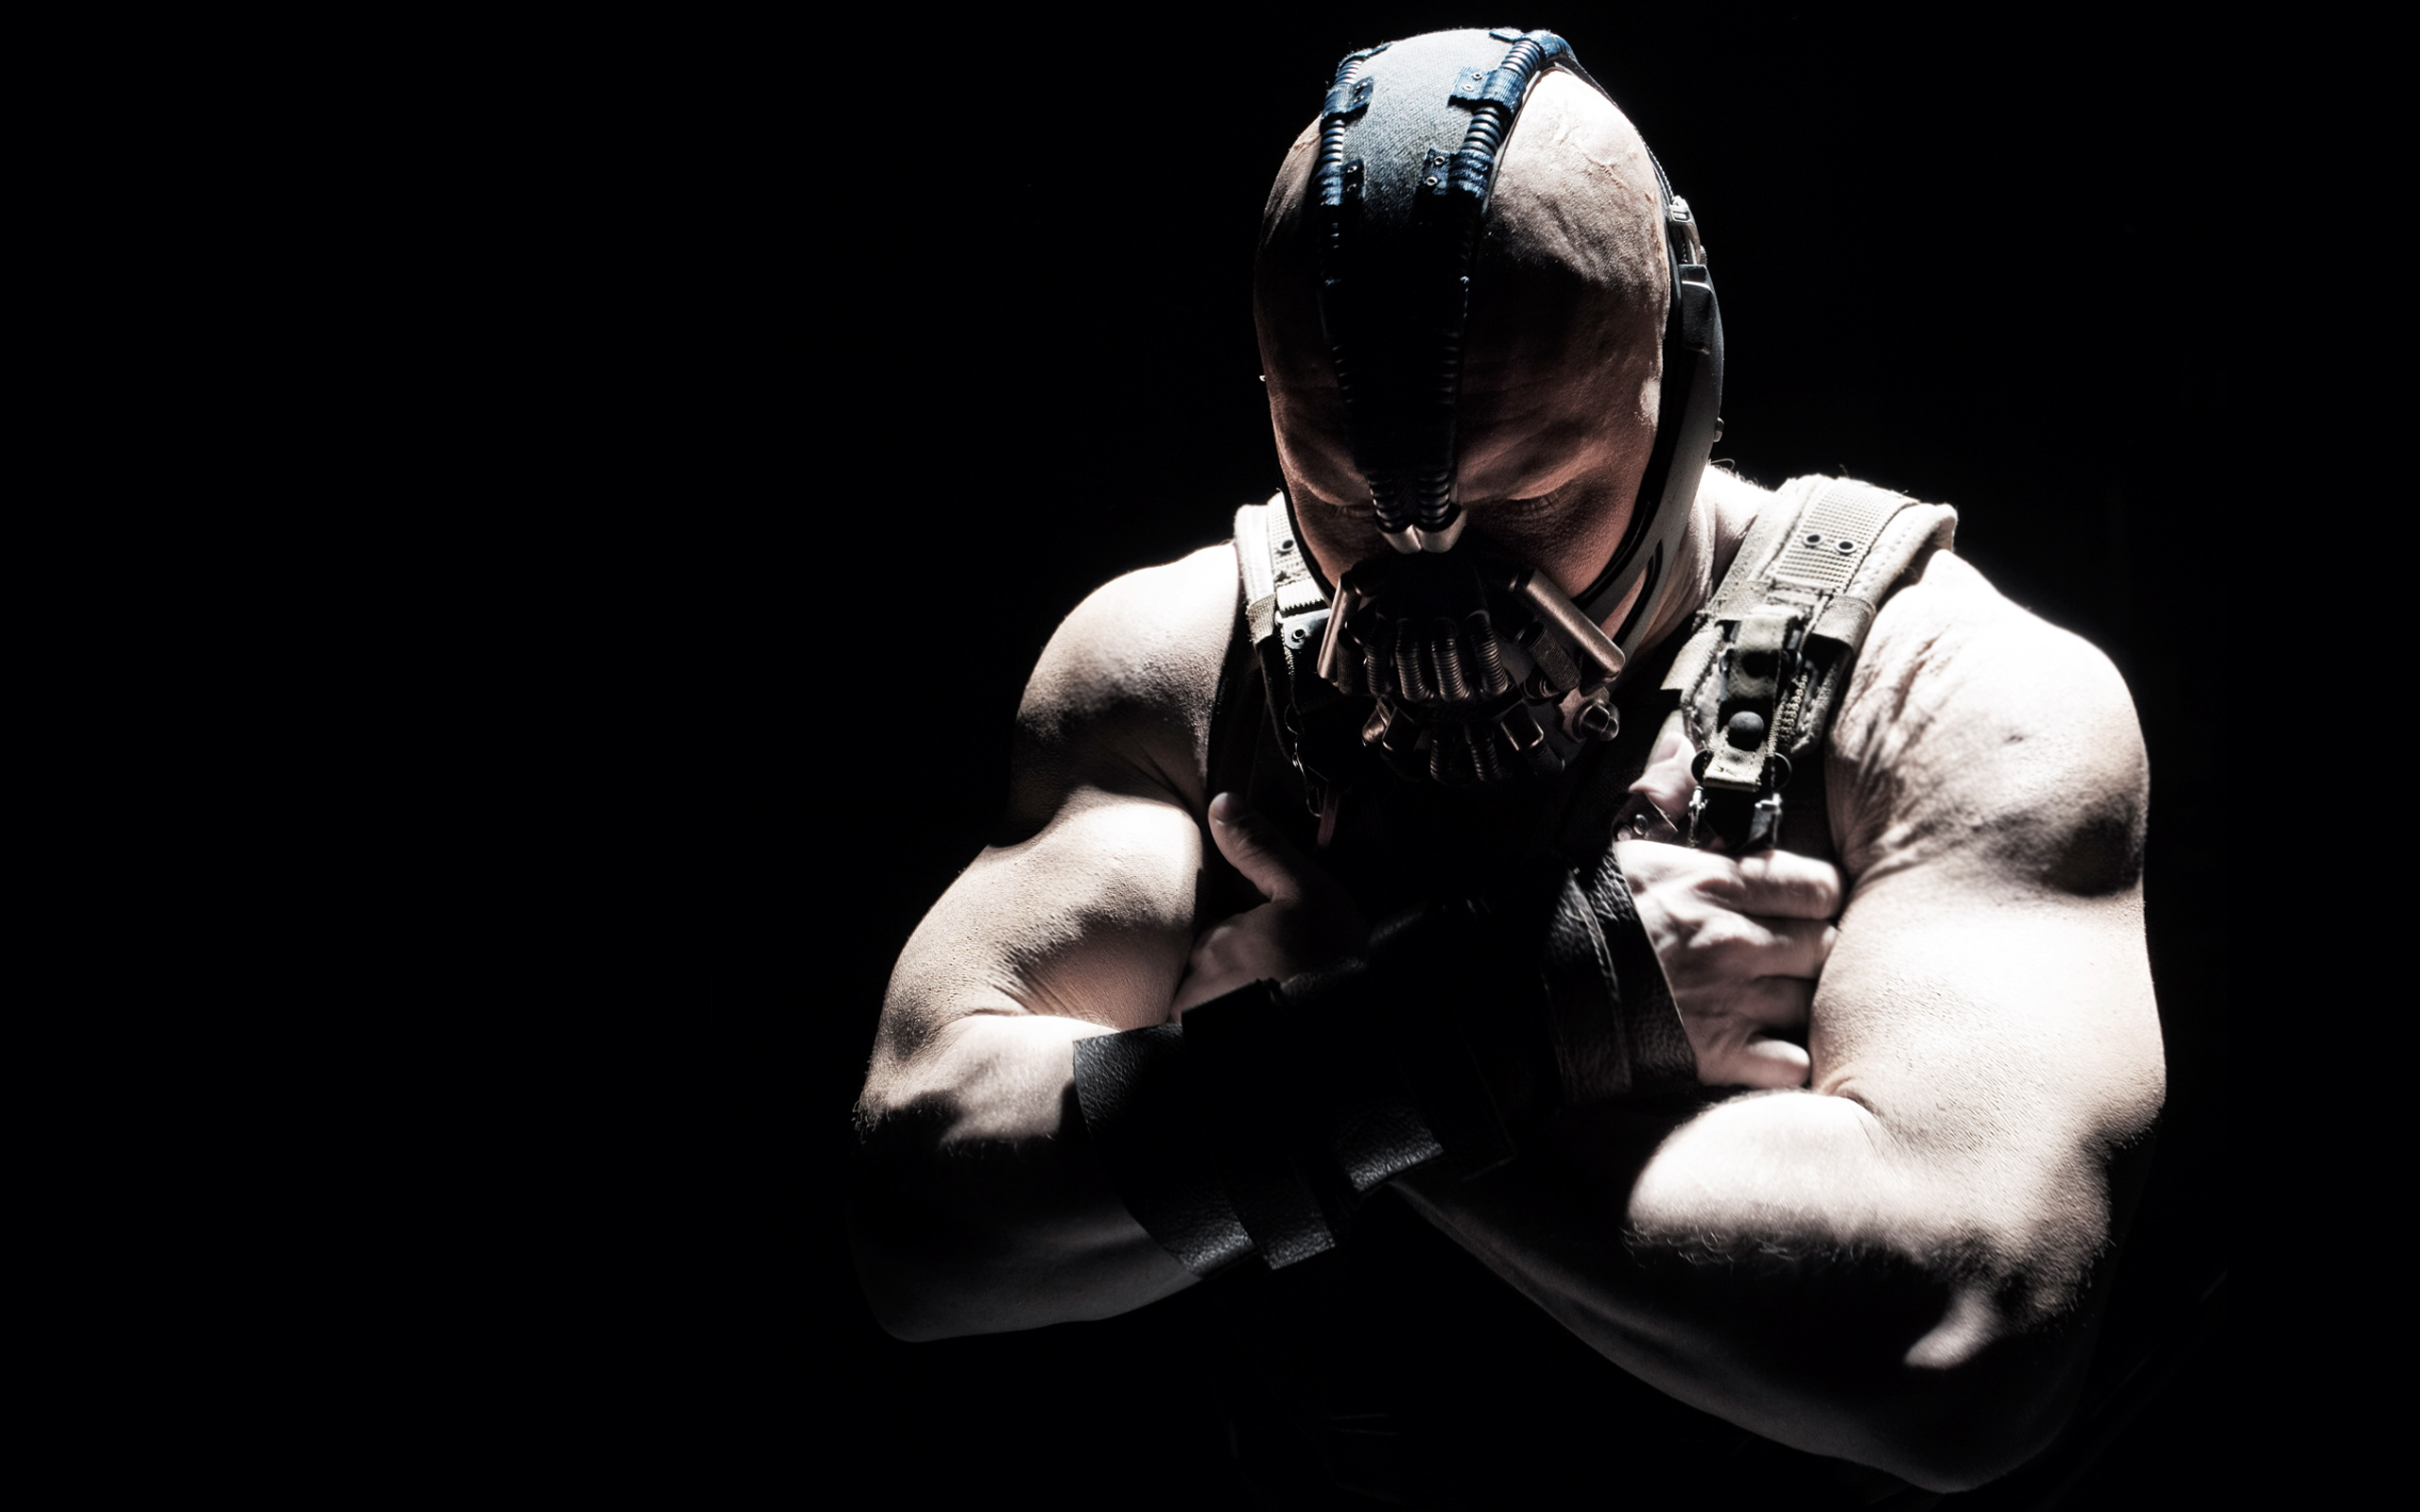 tom hardy in the dark knight rises wallpapers | wallpapers hd